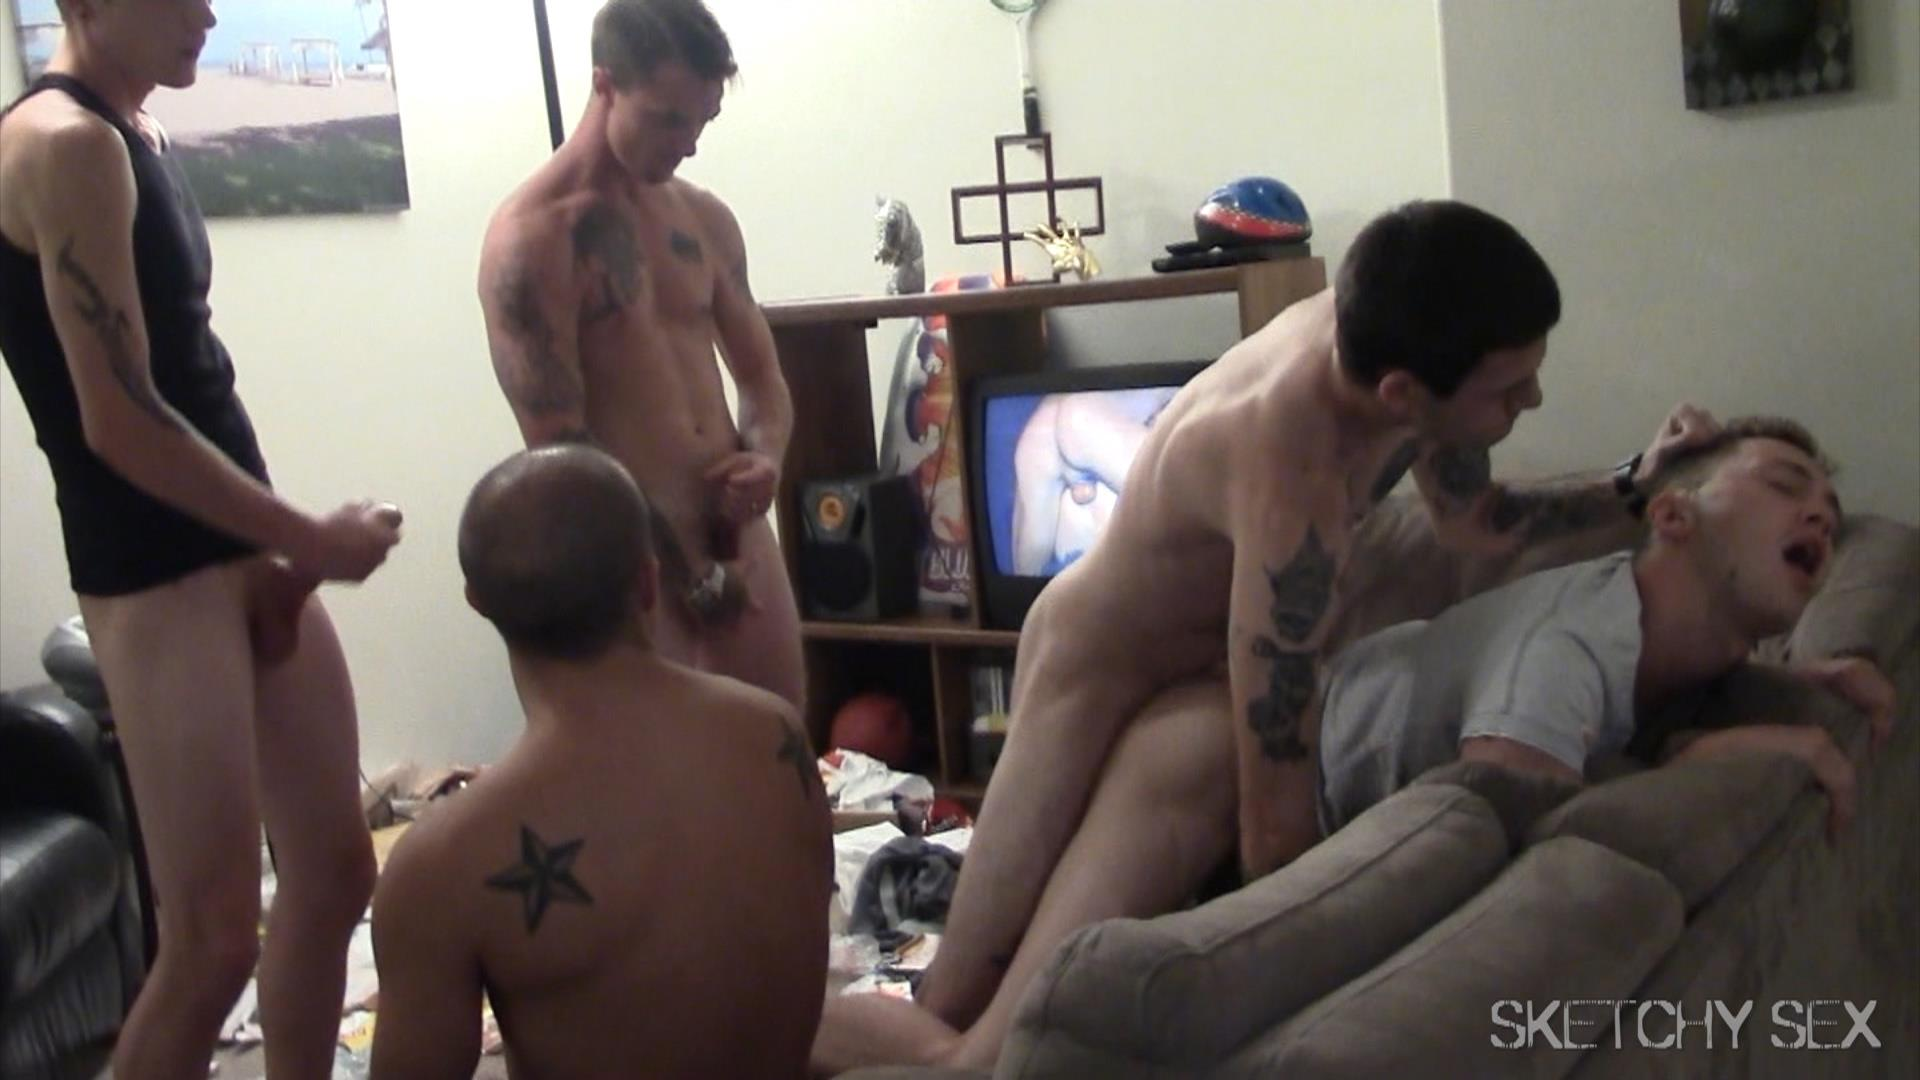 Sketchy Sex Bareback Breeding Party Amateur Gay Porn 16 Hosting An Anonymous Bareback Breeding Party